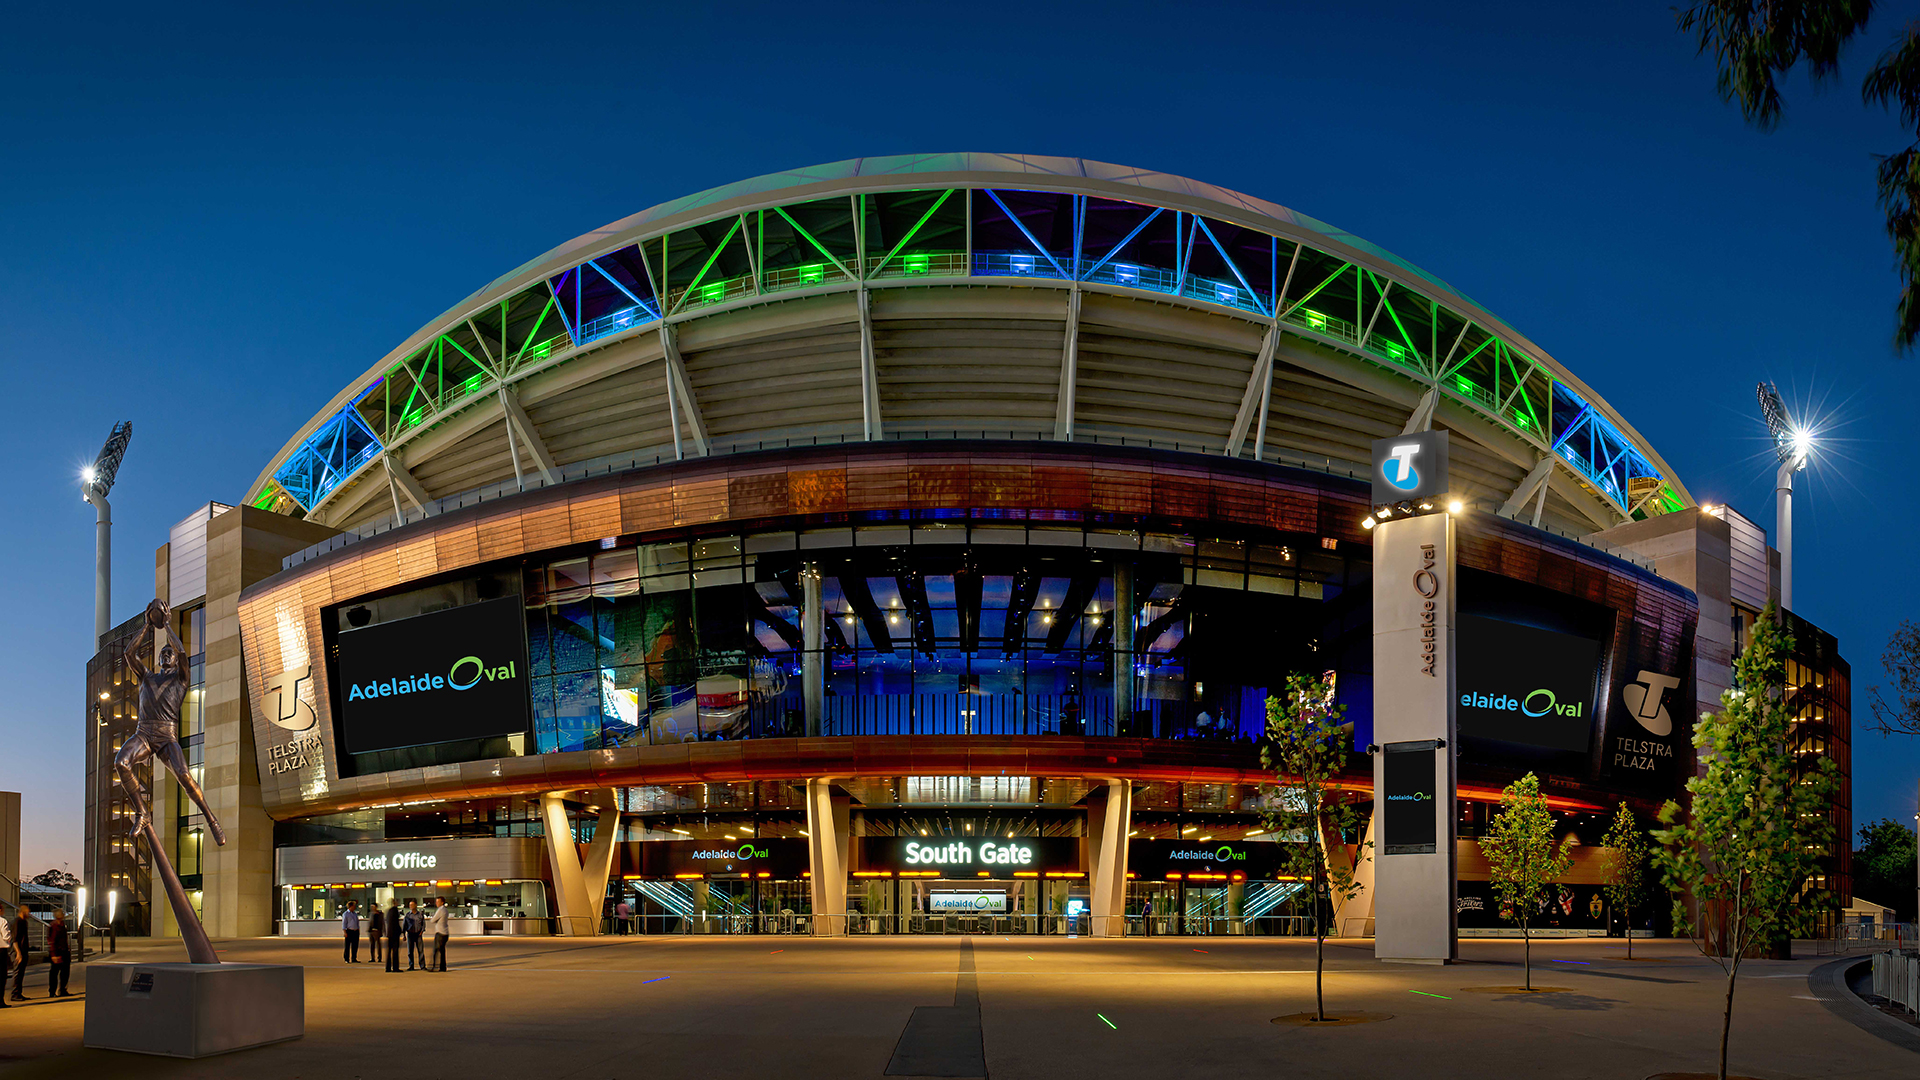 Adelaide Oval statement on lifting of crowd capacity